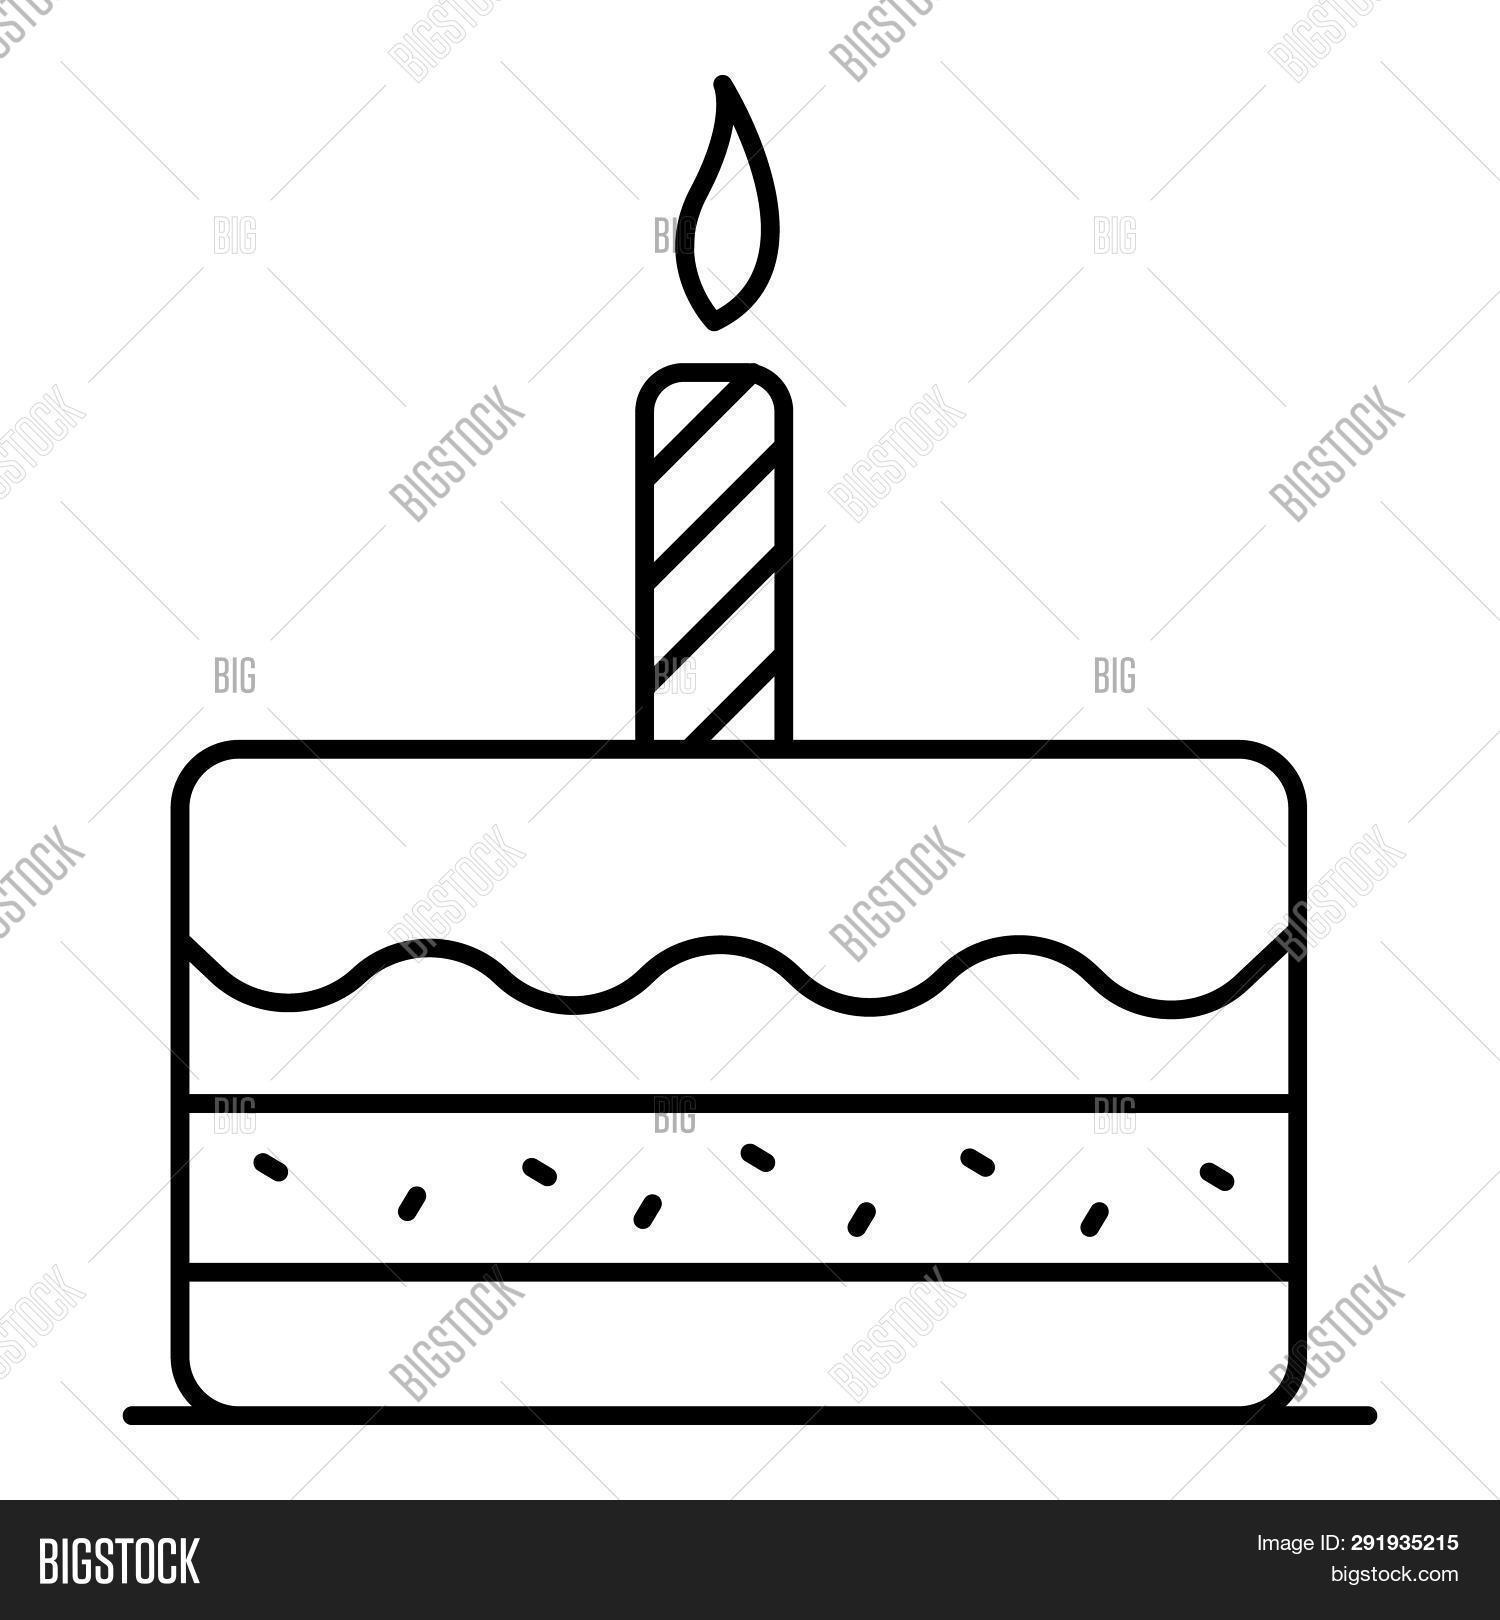 Stupendous First Birthday Cake Image Photo Free Trial Bigstock Birthday Cards Printable Trancafe Filternl